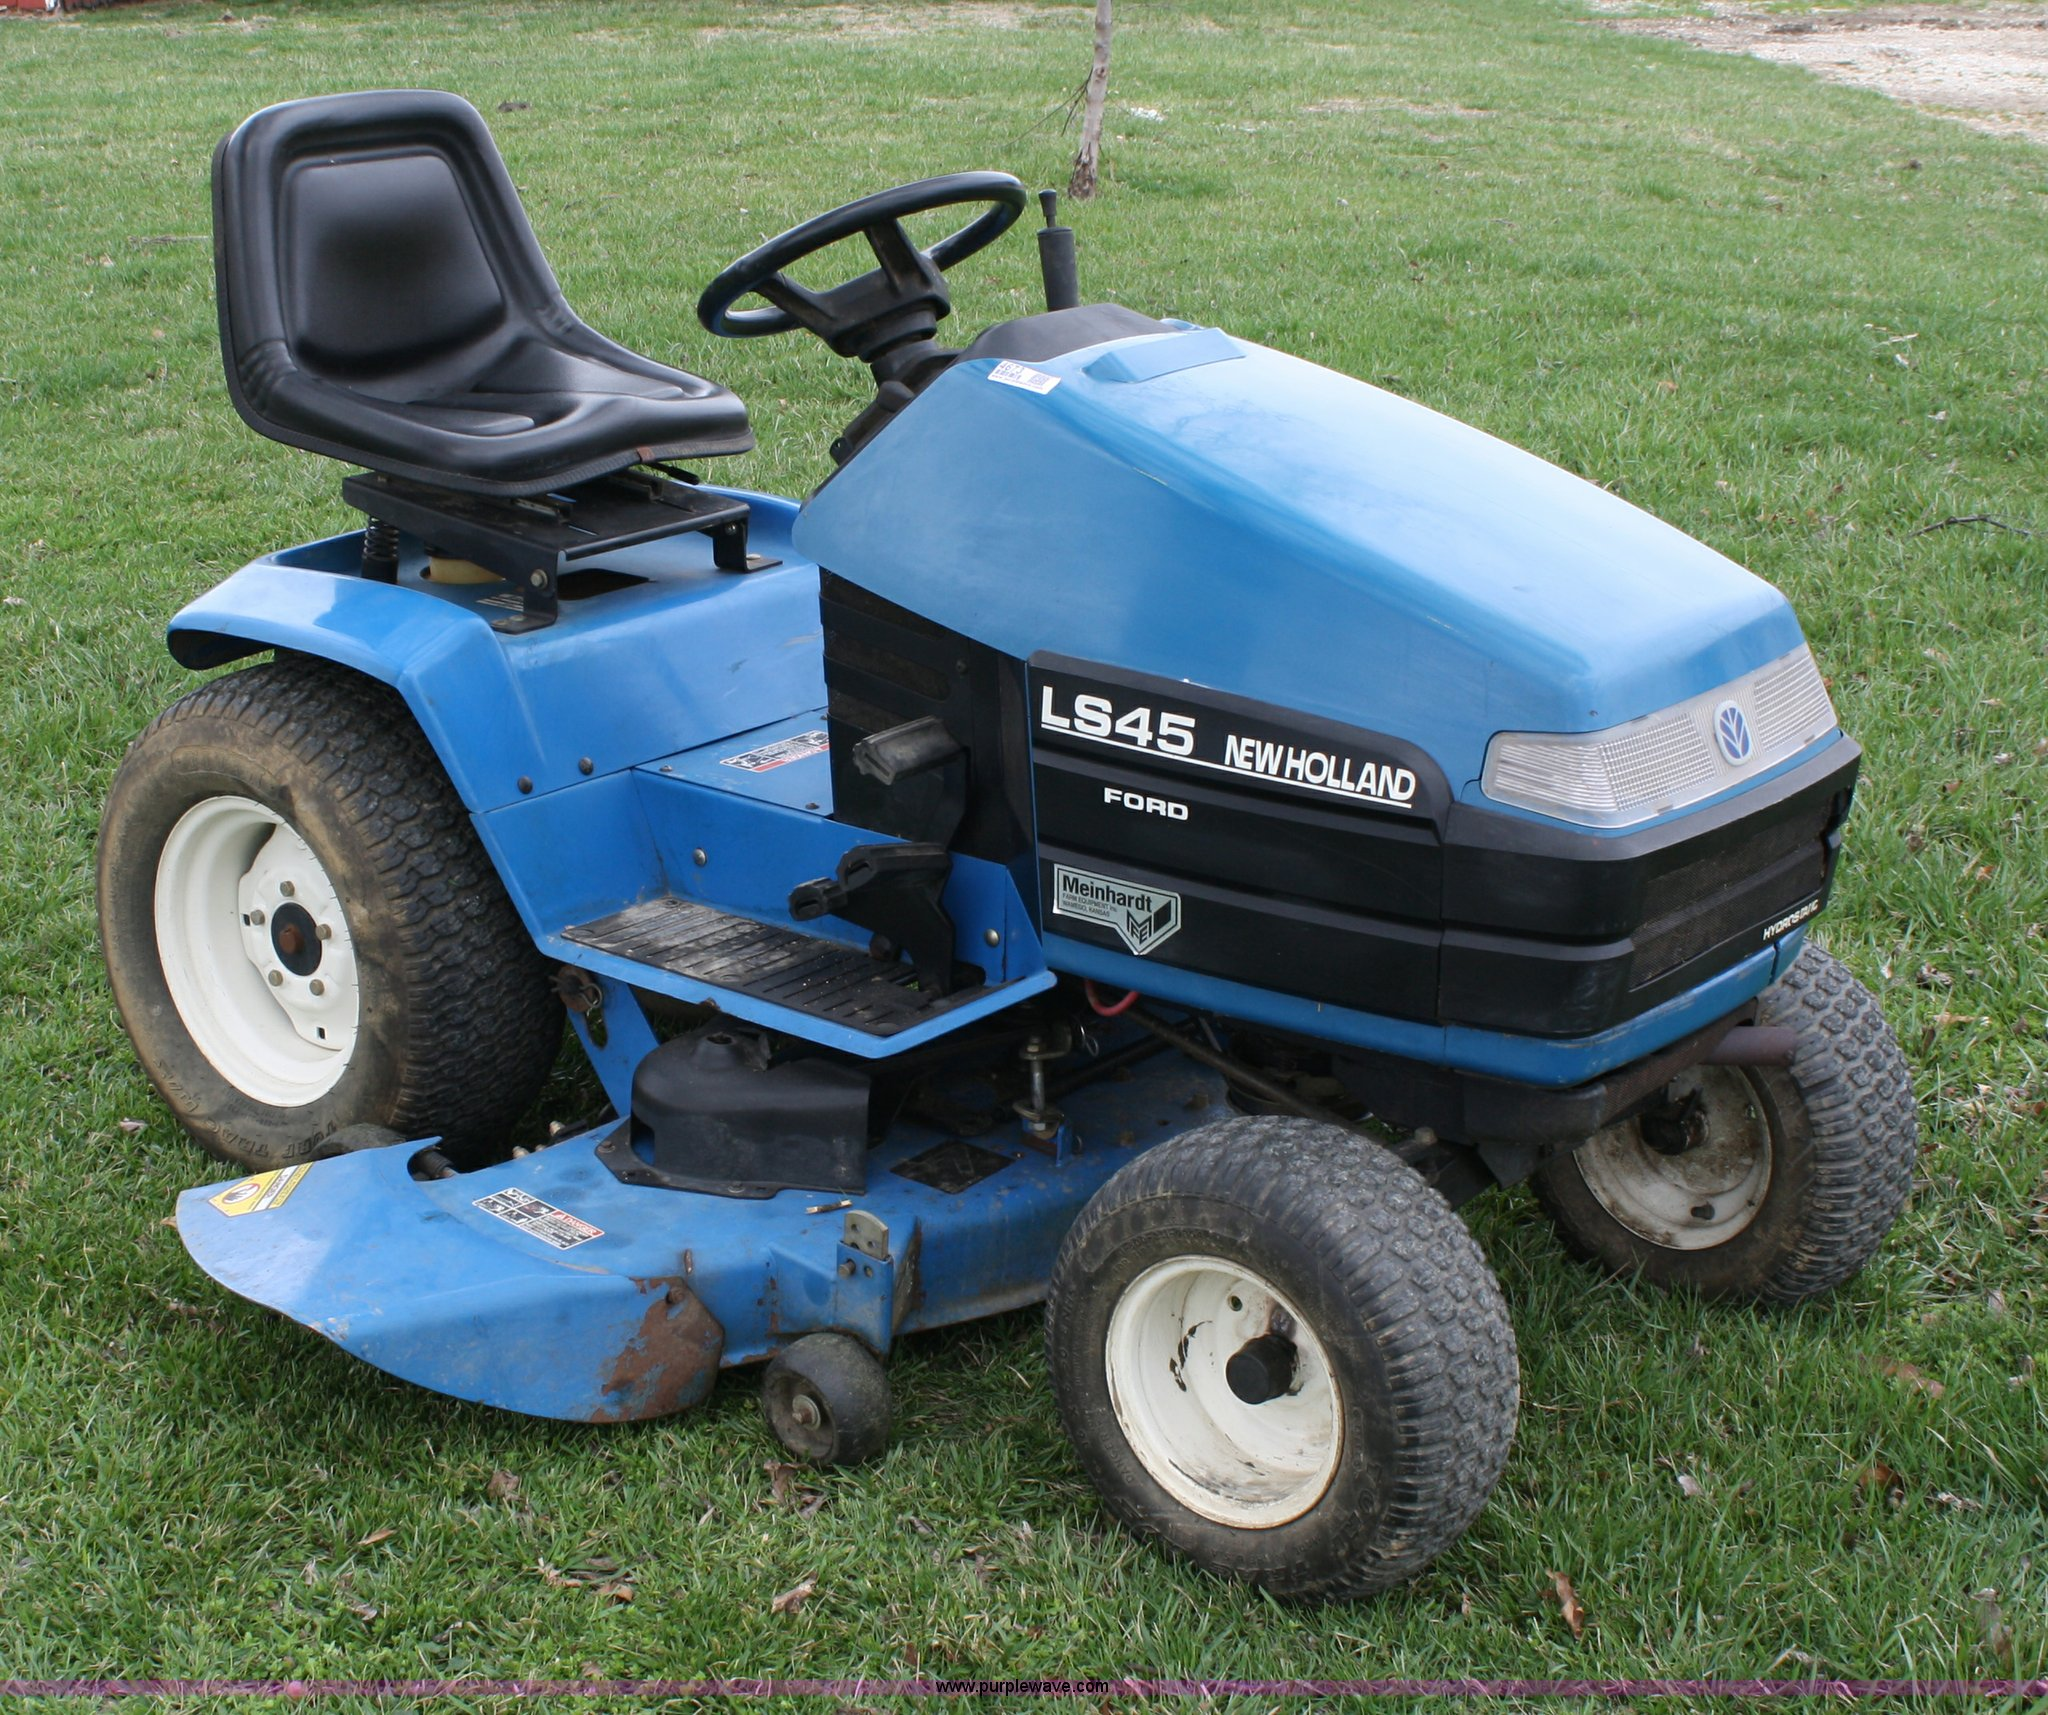 Ford New Holland LS45 lawn mower | Item 4673 | SOLD! April 2...